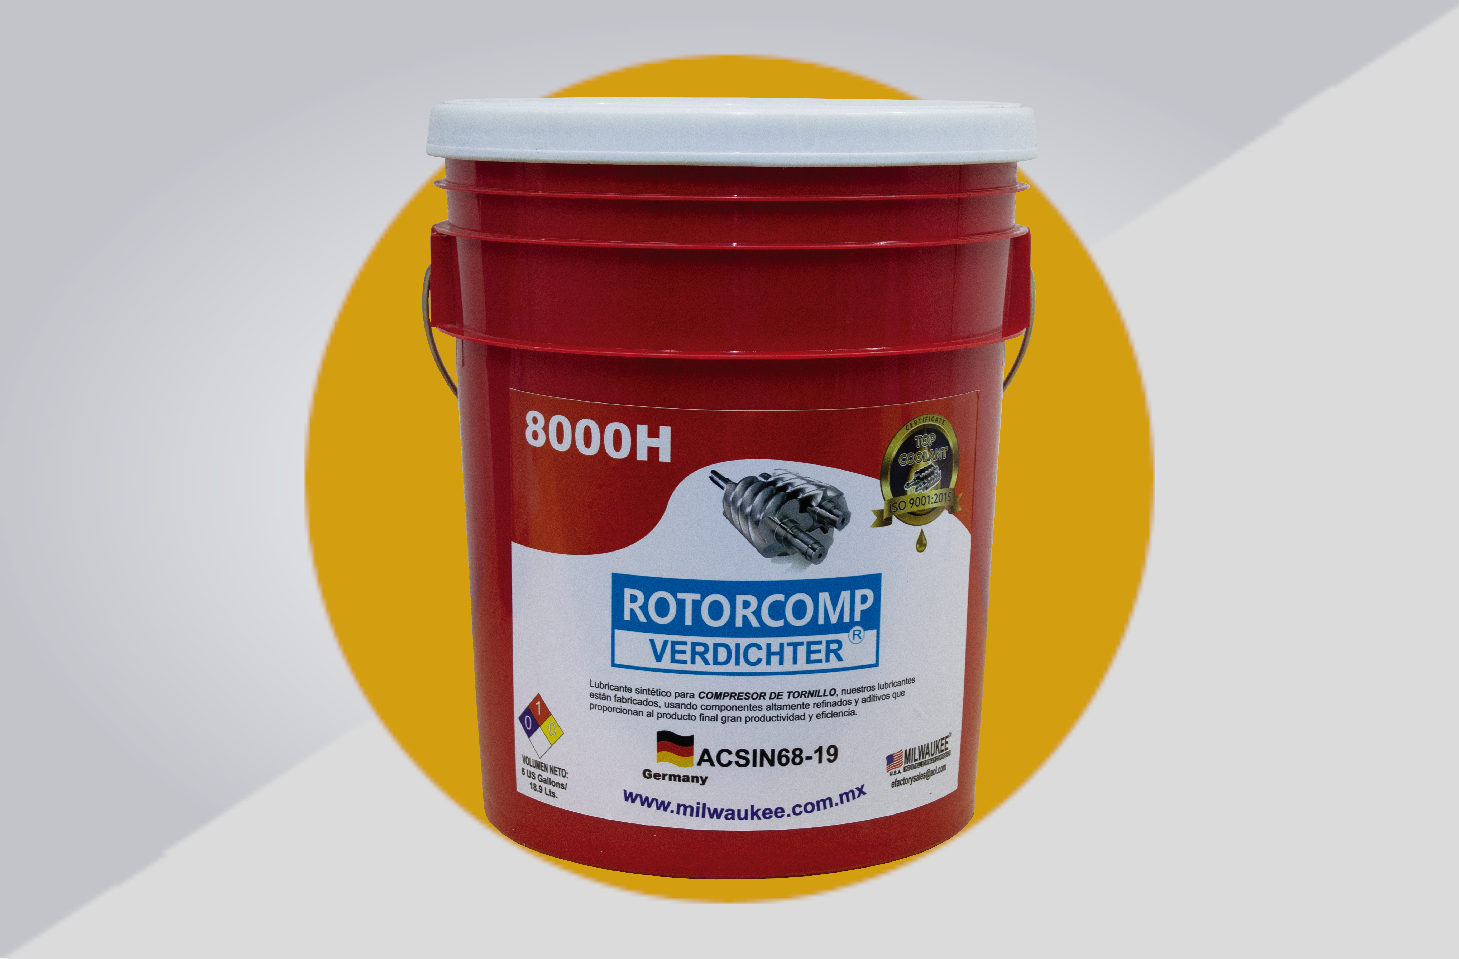 Rotorcomp Verdichter 8000H